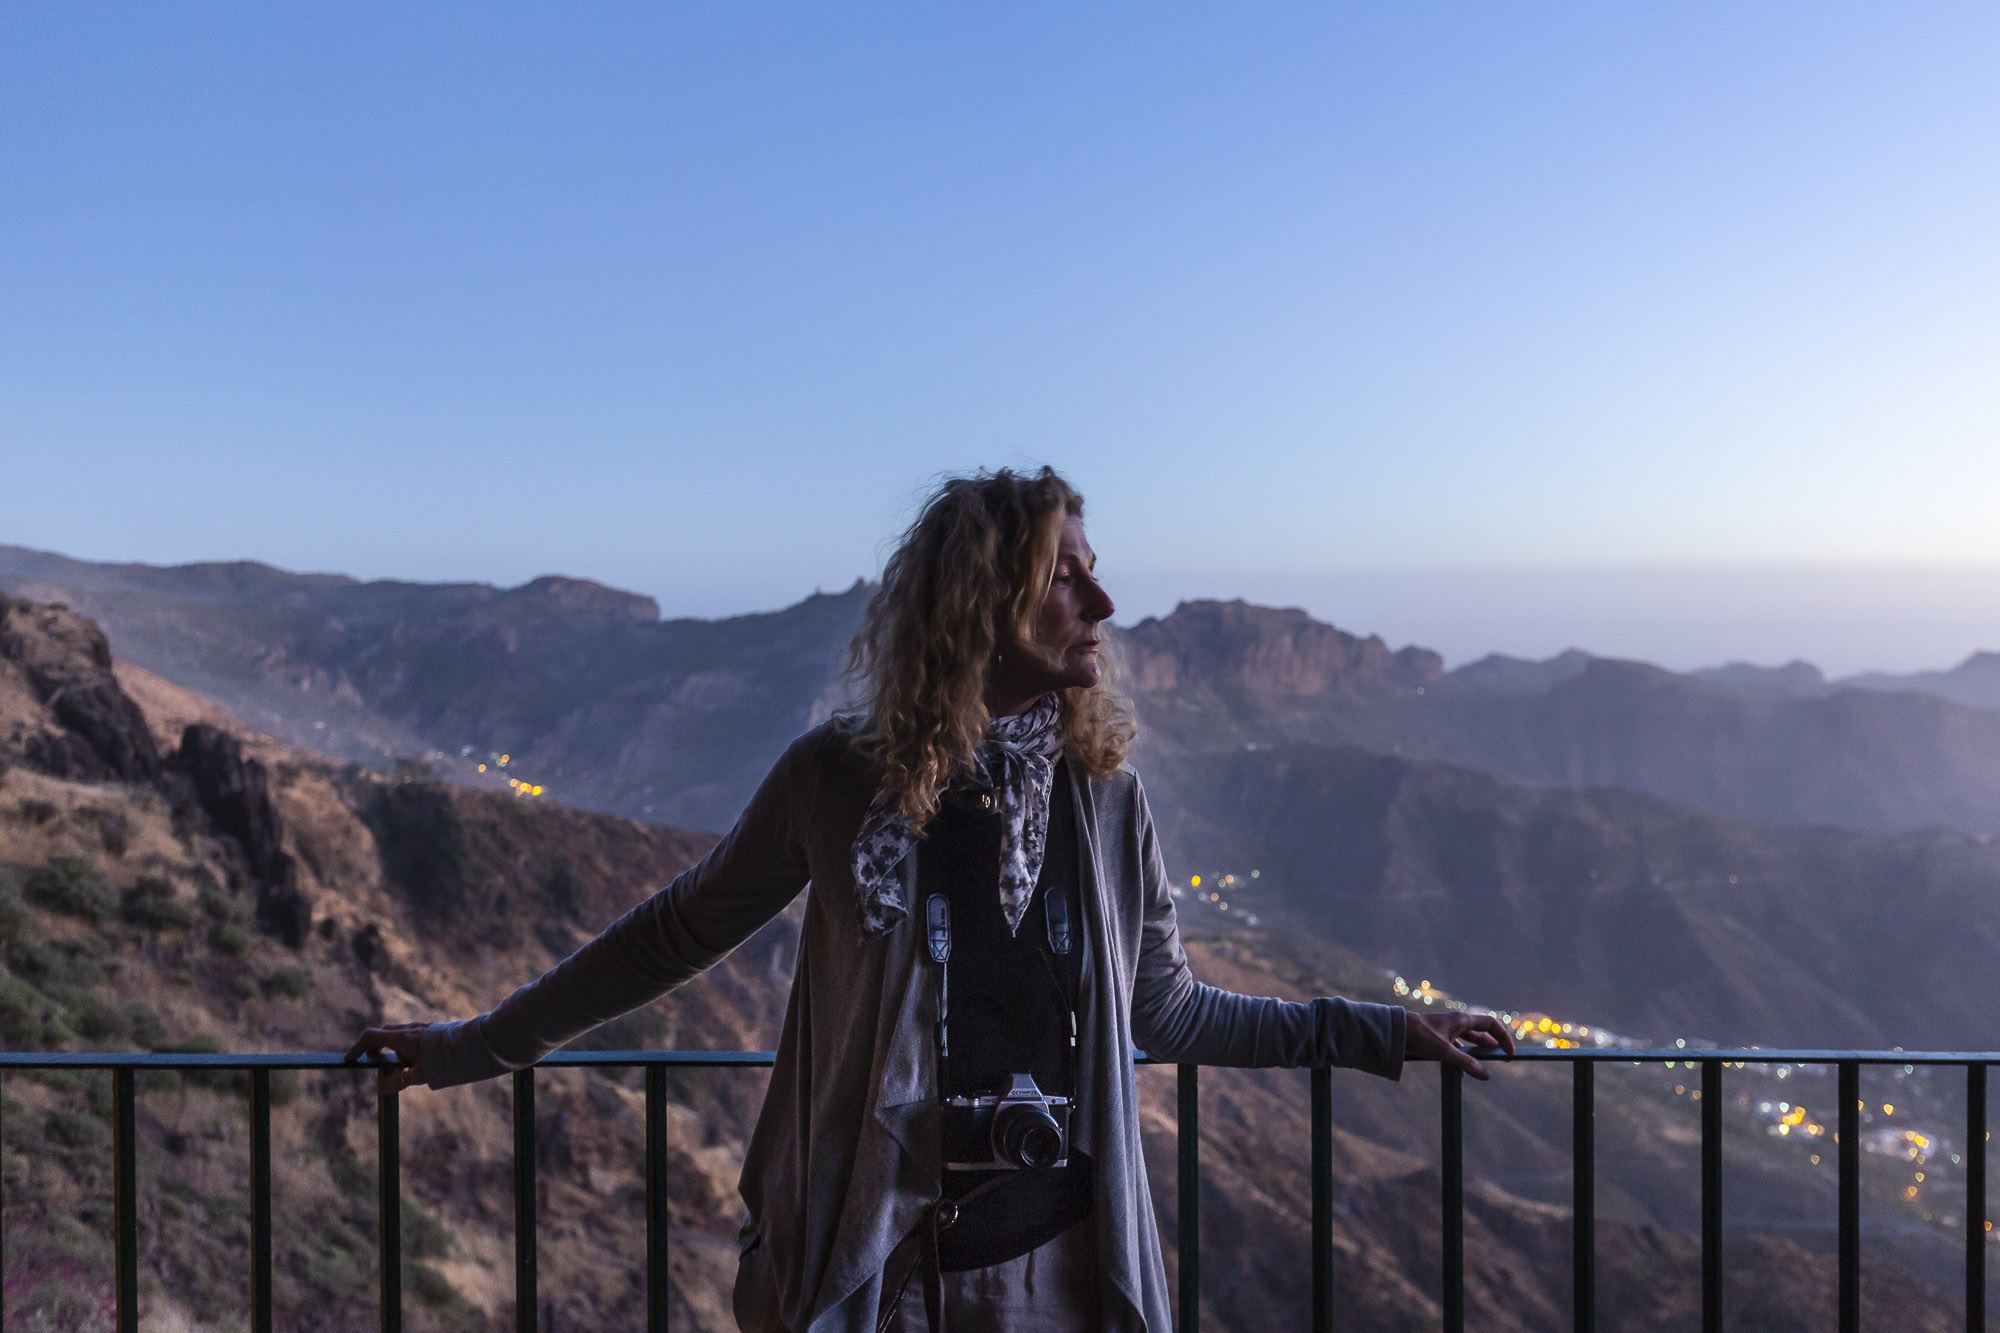 Enjoying the sunset on the peak during a one-to-one photography workshop in Gran Canaria